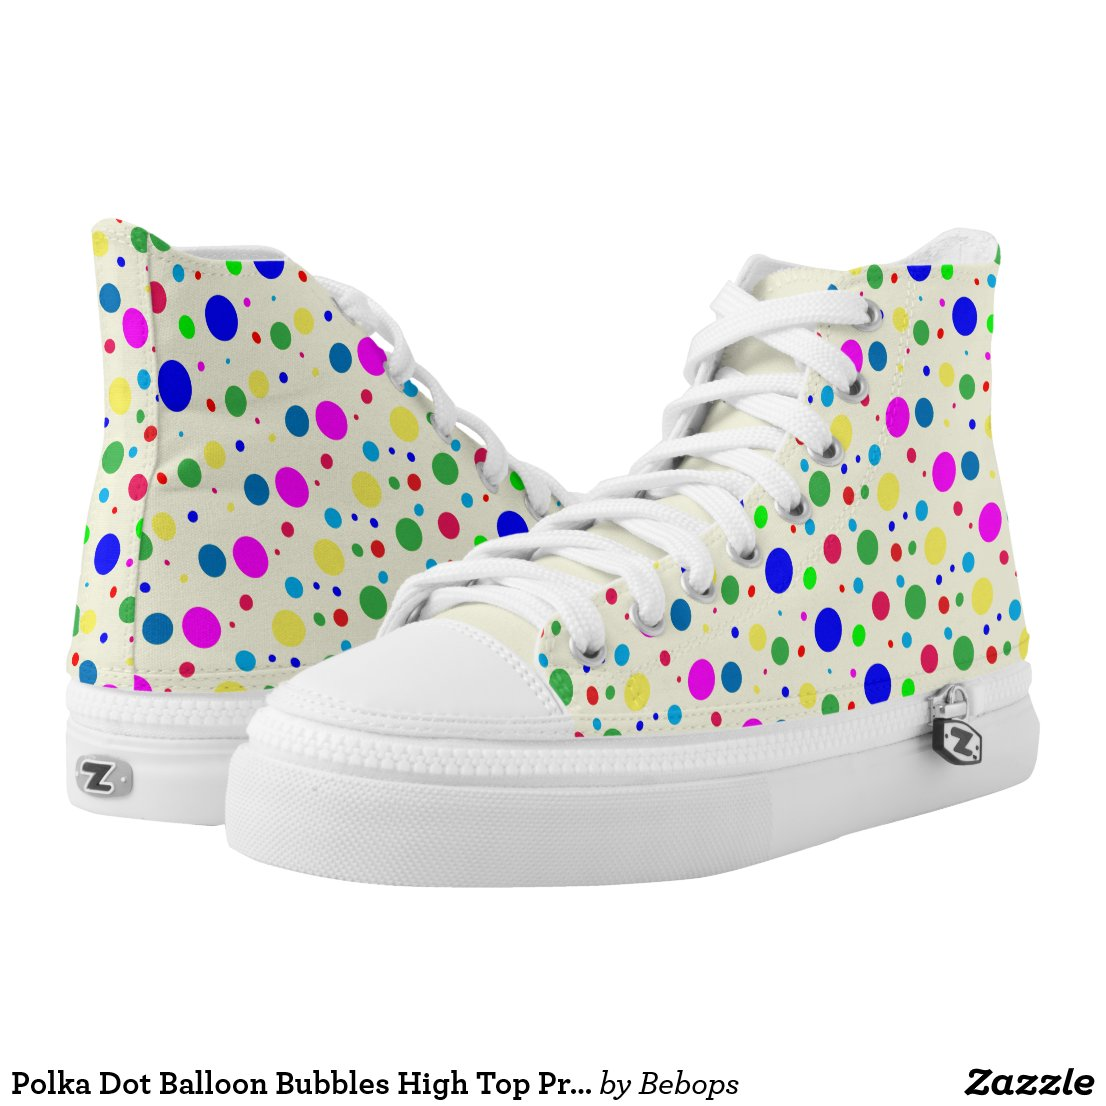 Polka Dot Balloon Bubbles High Top Printed Shoes